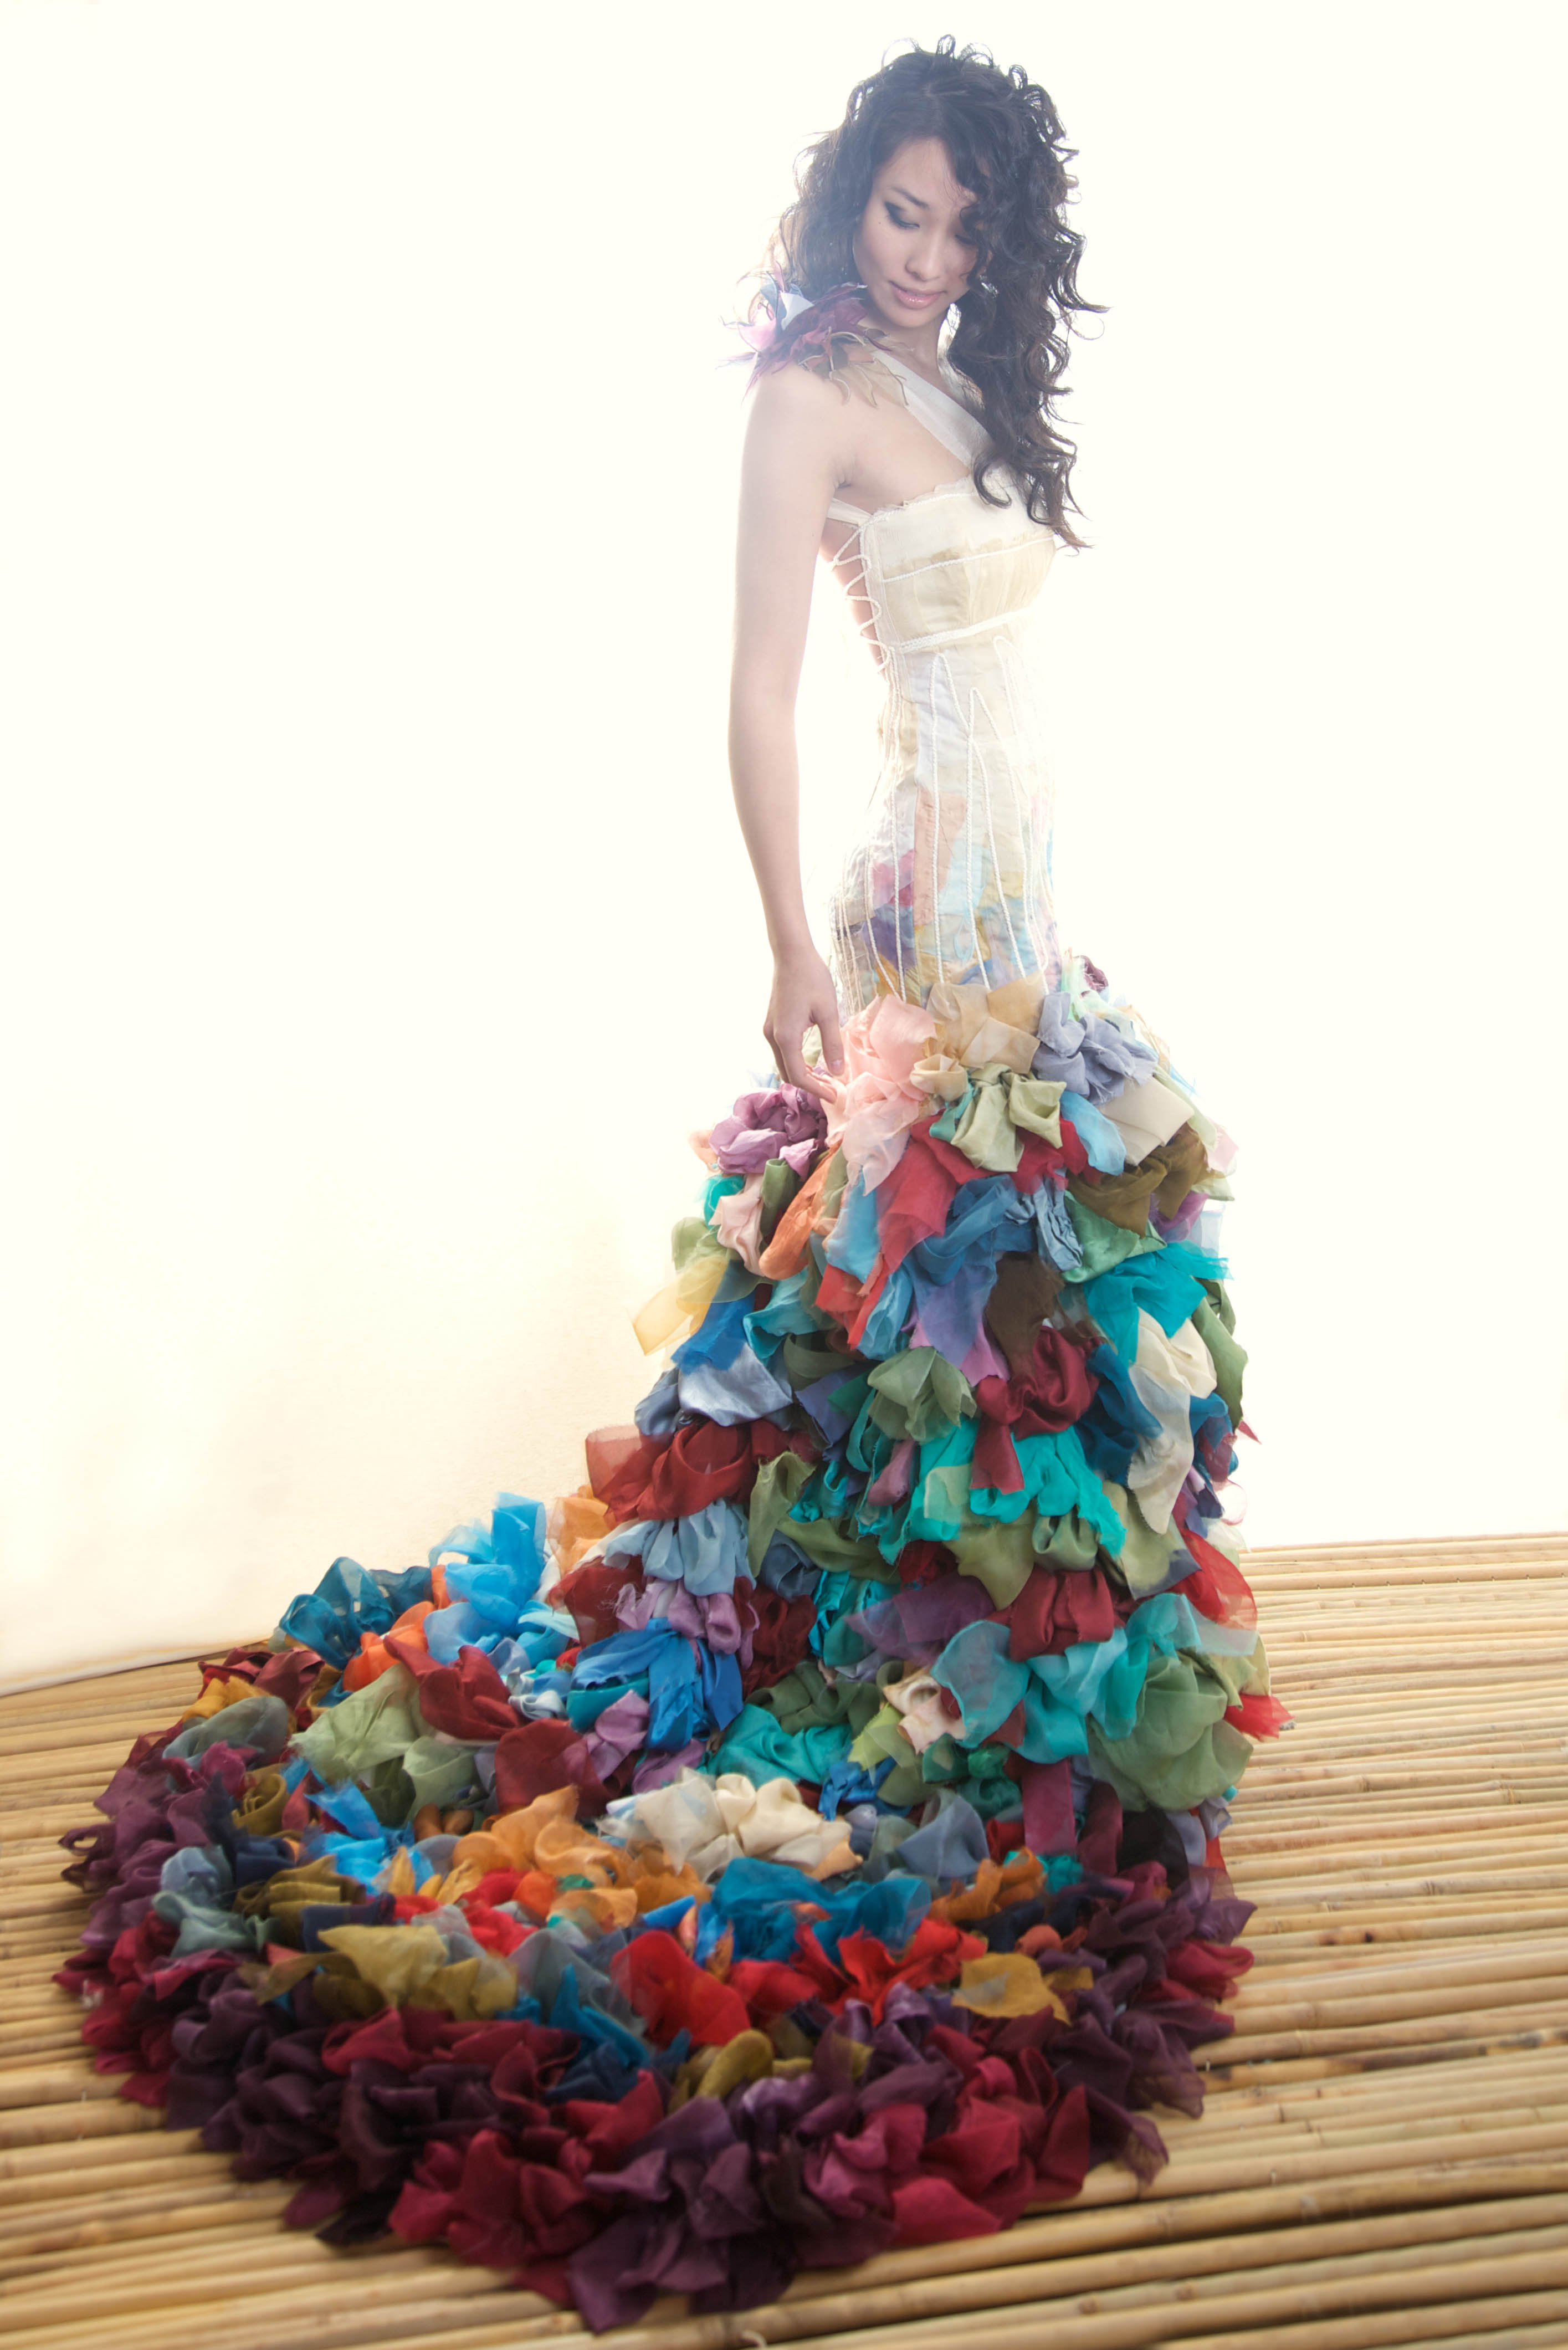 Forum on this topic: The most awesome alternative wedding dresses for , the-most-awesome-alternative-wedding-dresses-for/